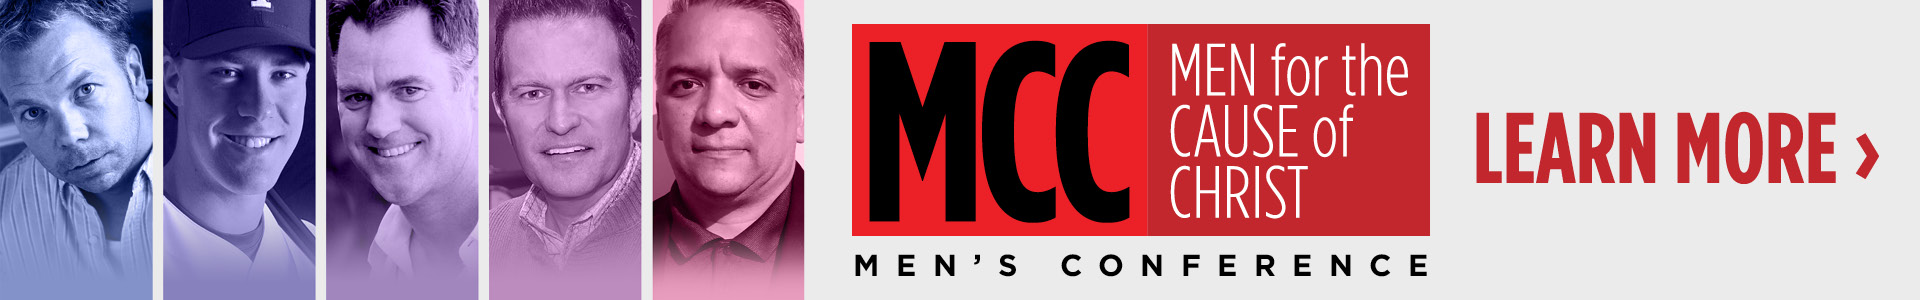 MCC Men for the Cause of Christ Learn More